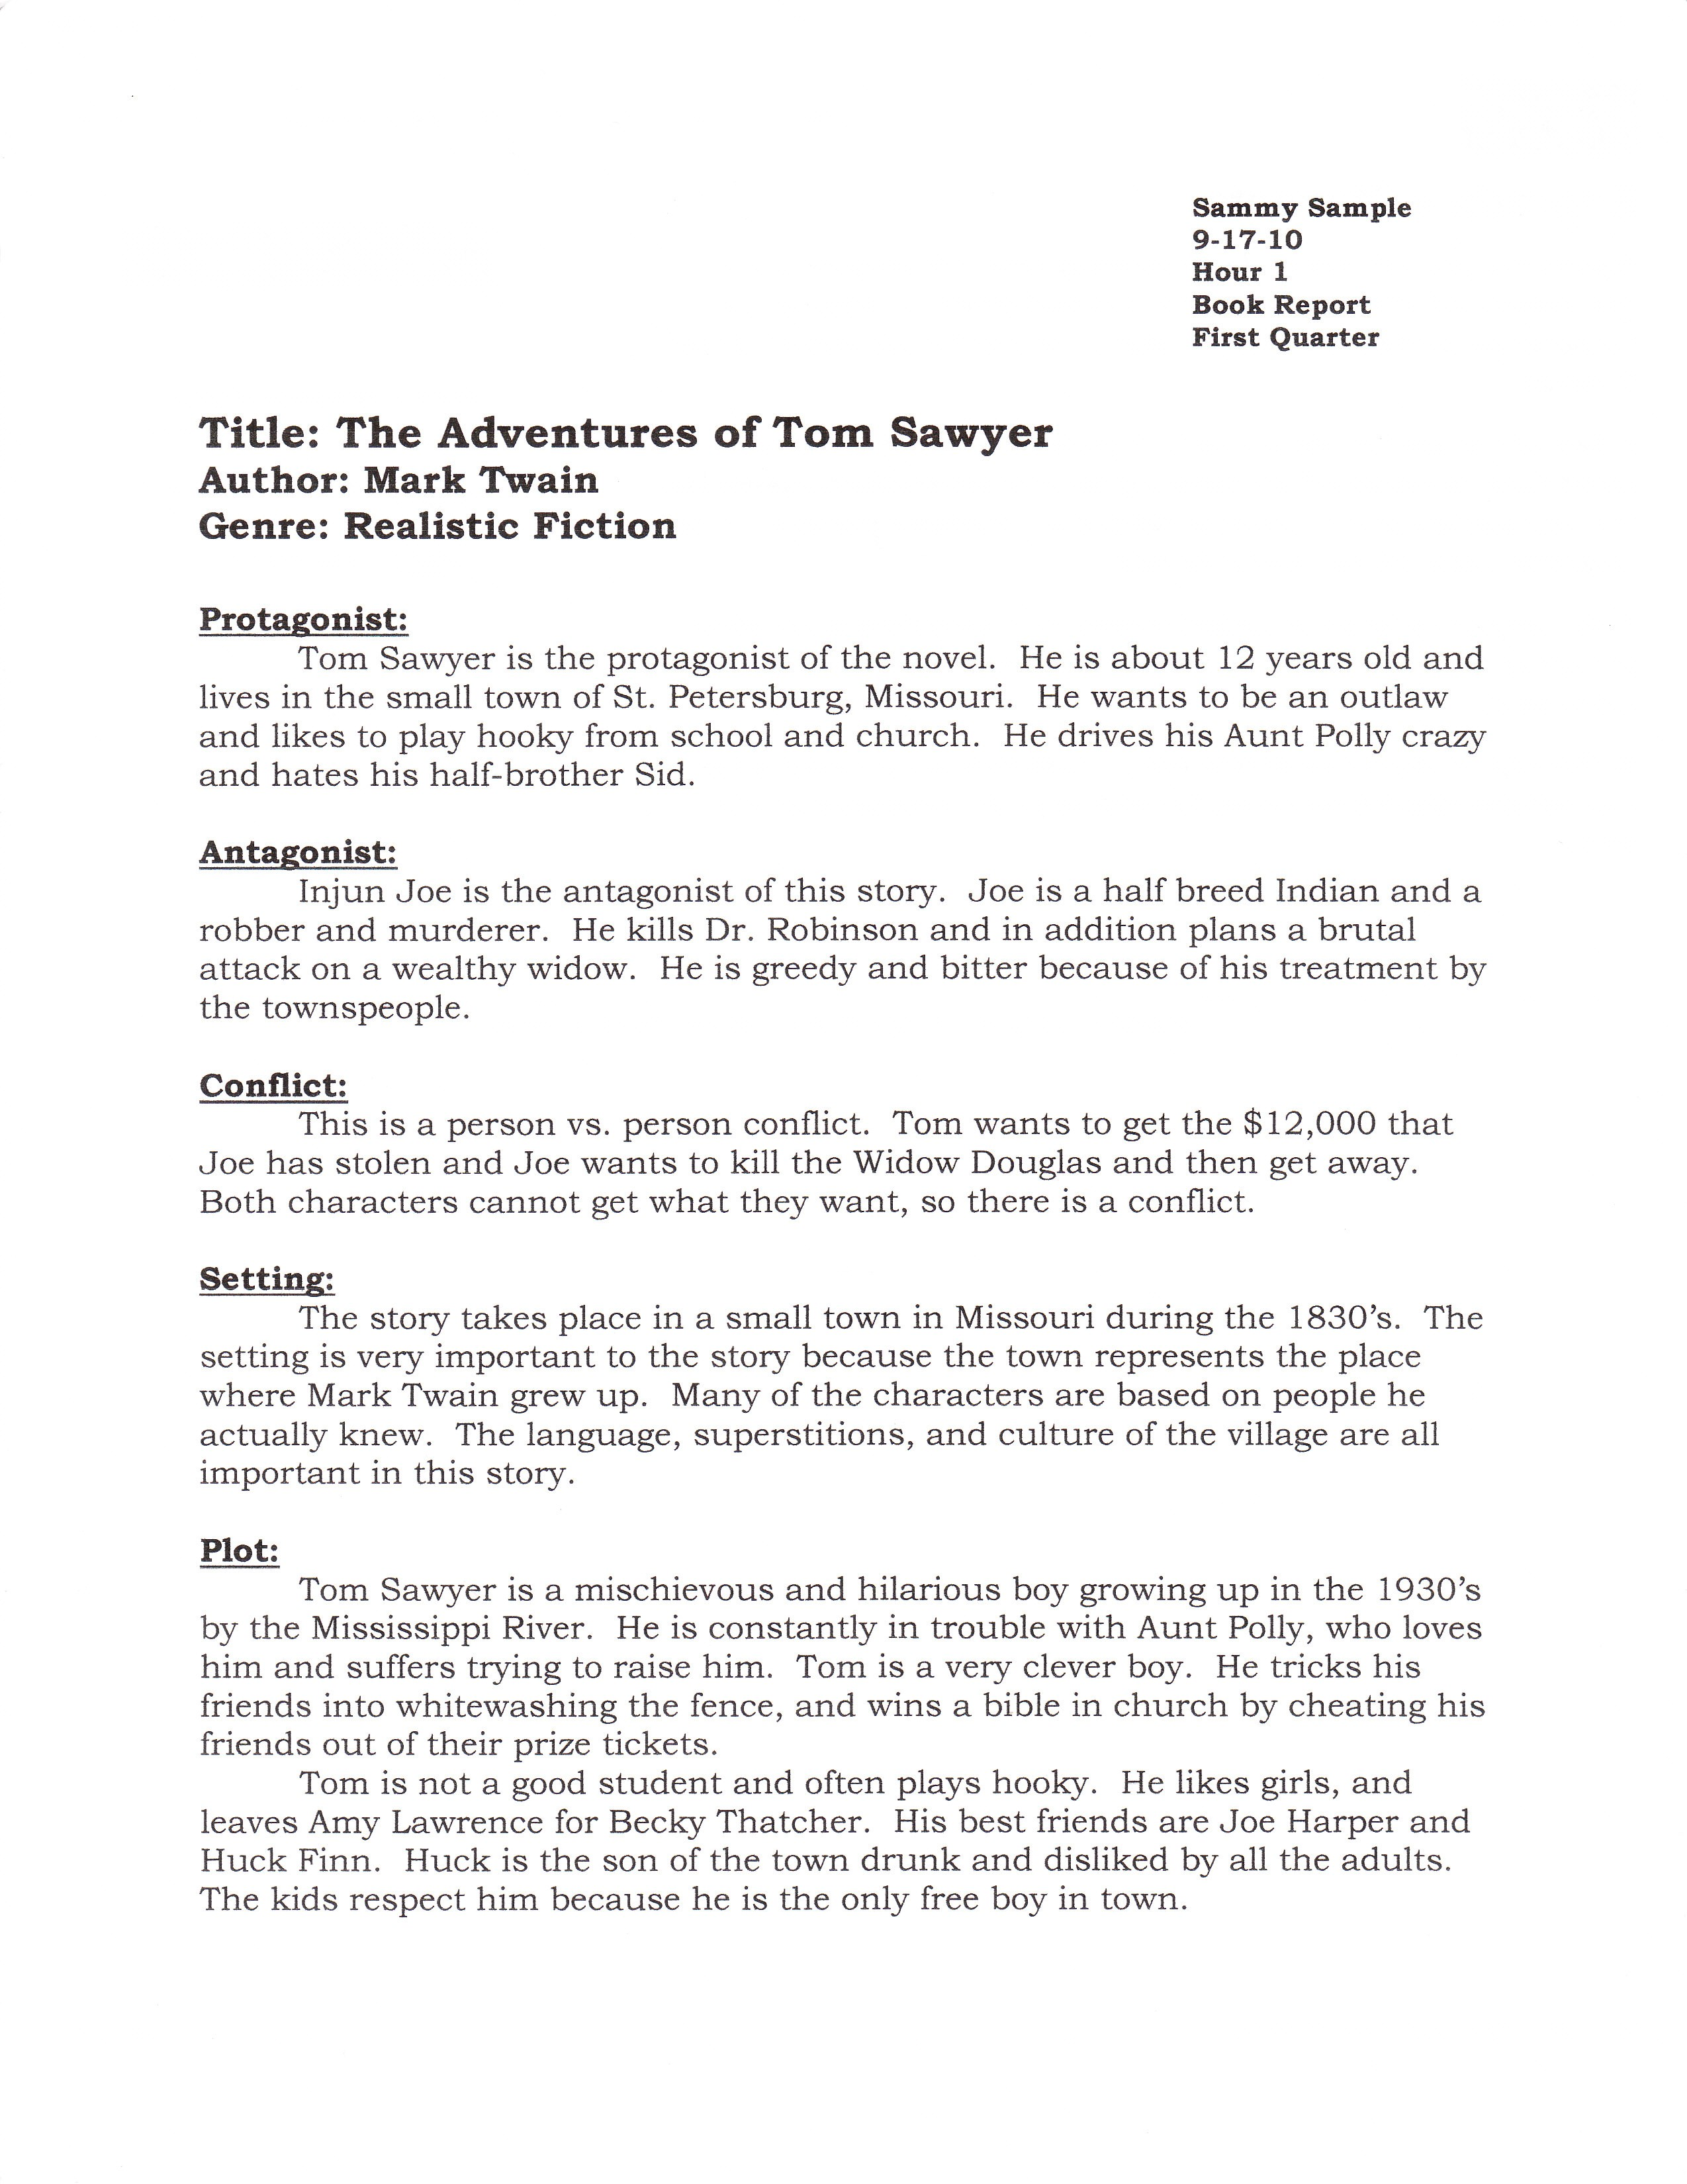 Apa Format Research Paper Example Le on contents page, cover page for, customessaywritersfz example abstract, reference examples, essaywritingservicevcr title page for, running head, purdue owl,